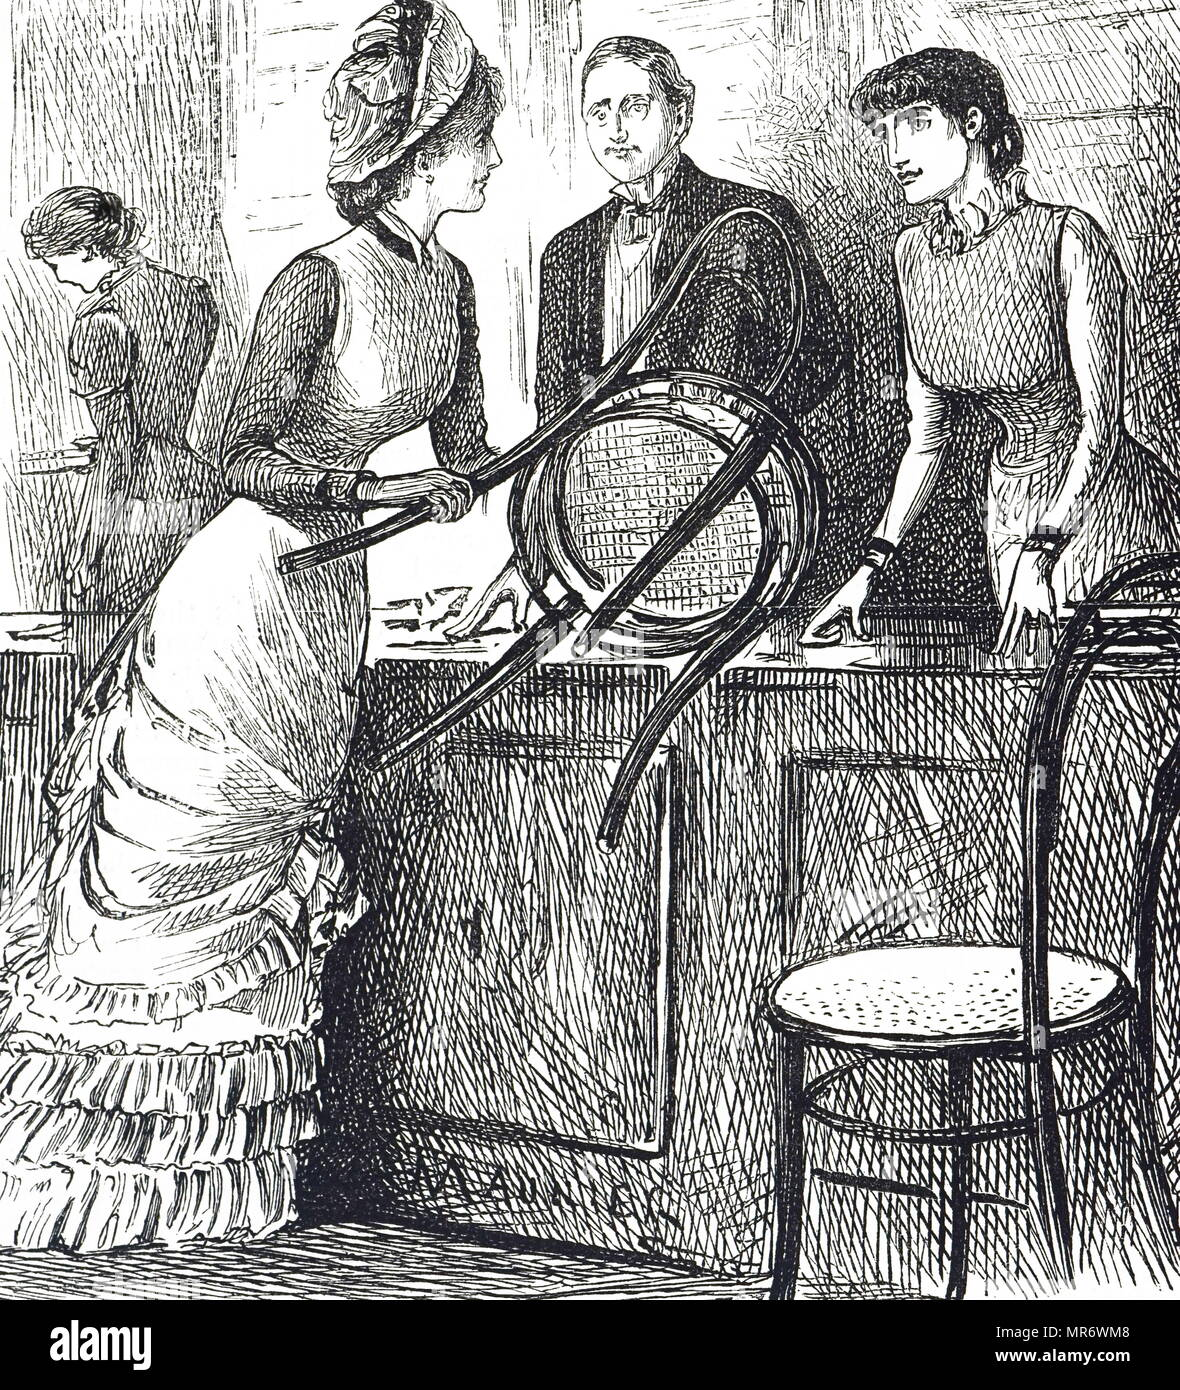 Cartoon commenting on the working conditions of shop assistants. Illustrated by George du Maurier (1834-1896) a Franco-British cartoonist and author. Dated 19th century - Stock Image